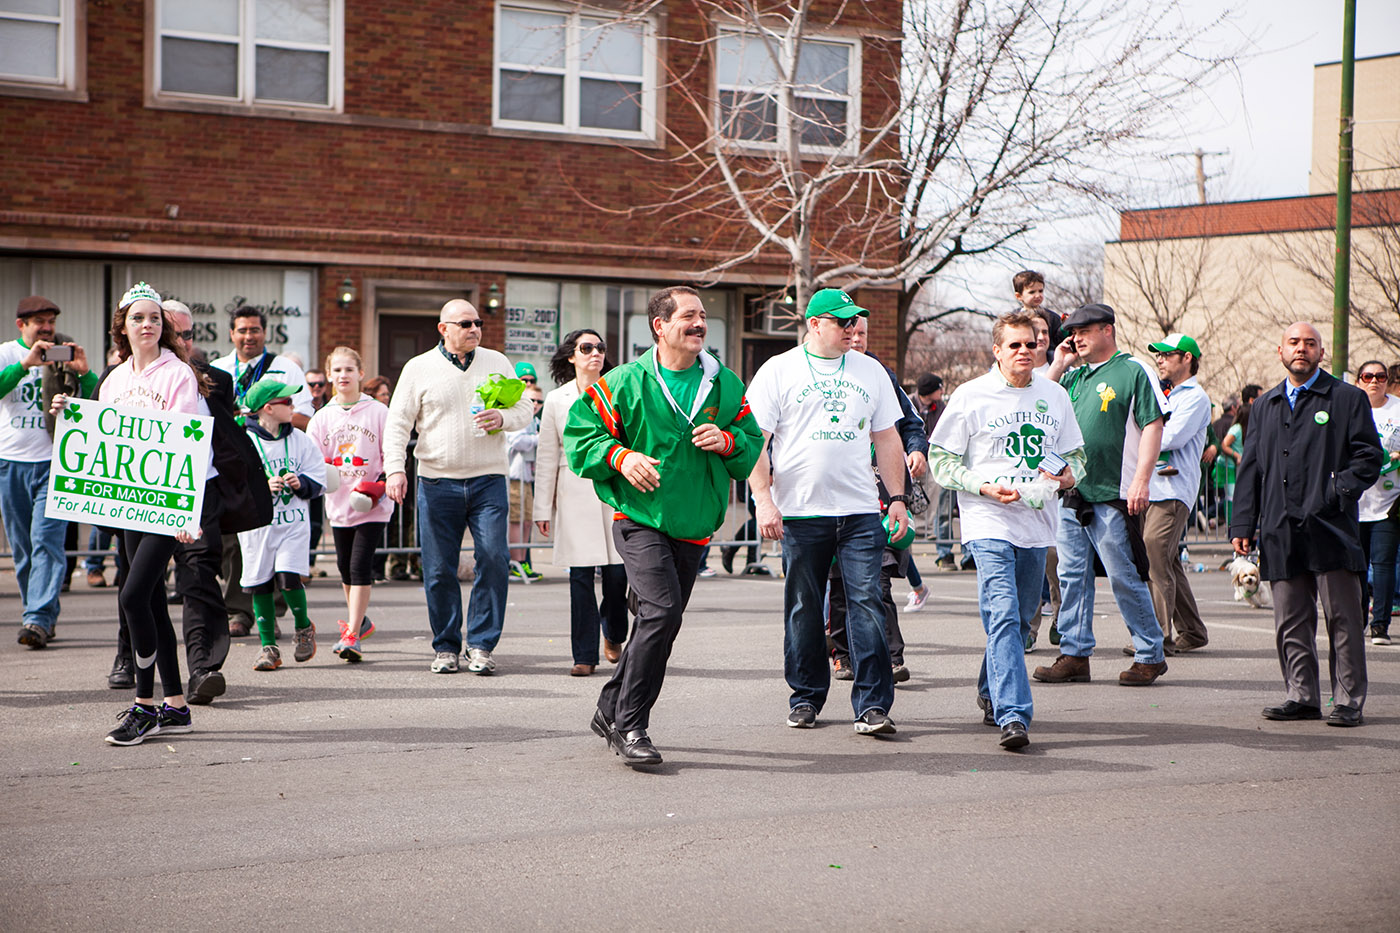 Chuy Garcia at the Chicago South Side Irish Parade 2015 - St. Patrick's Day